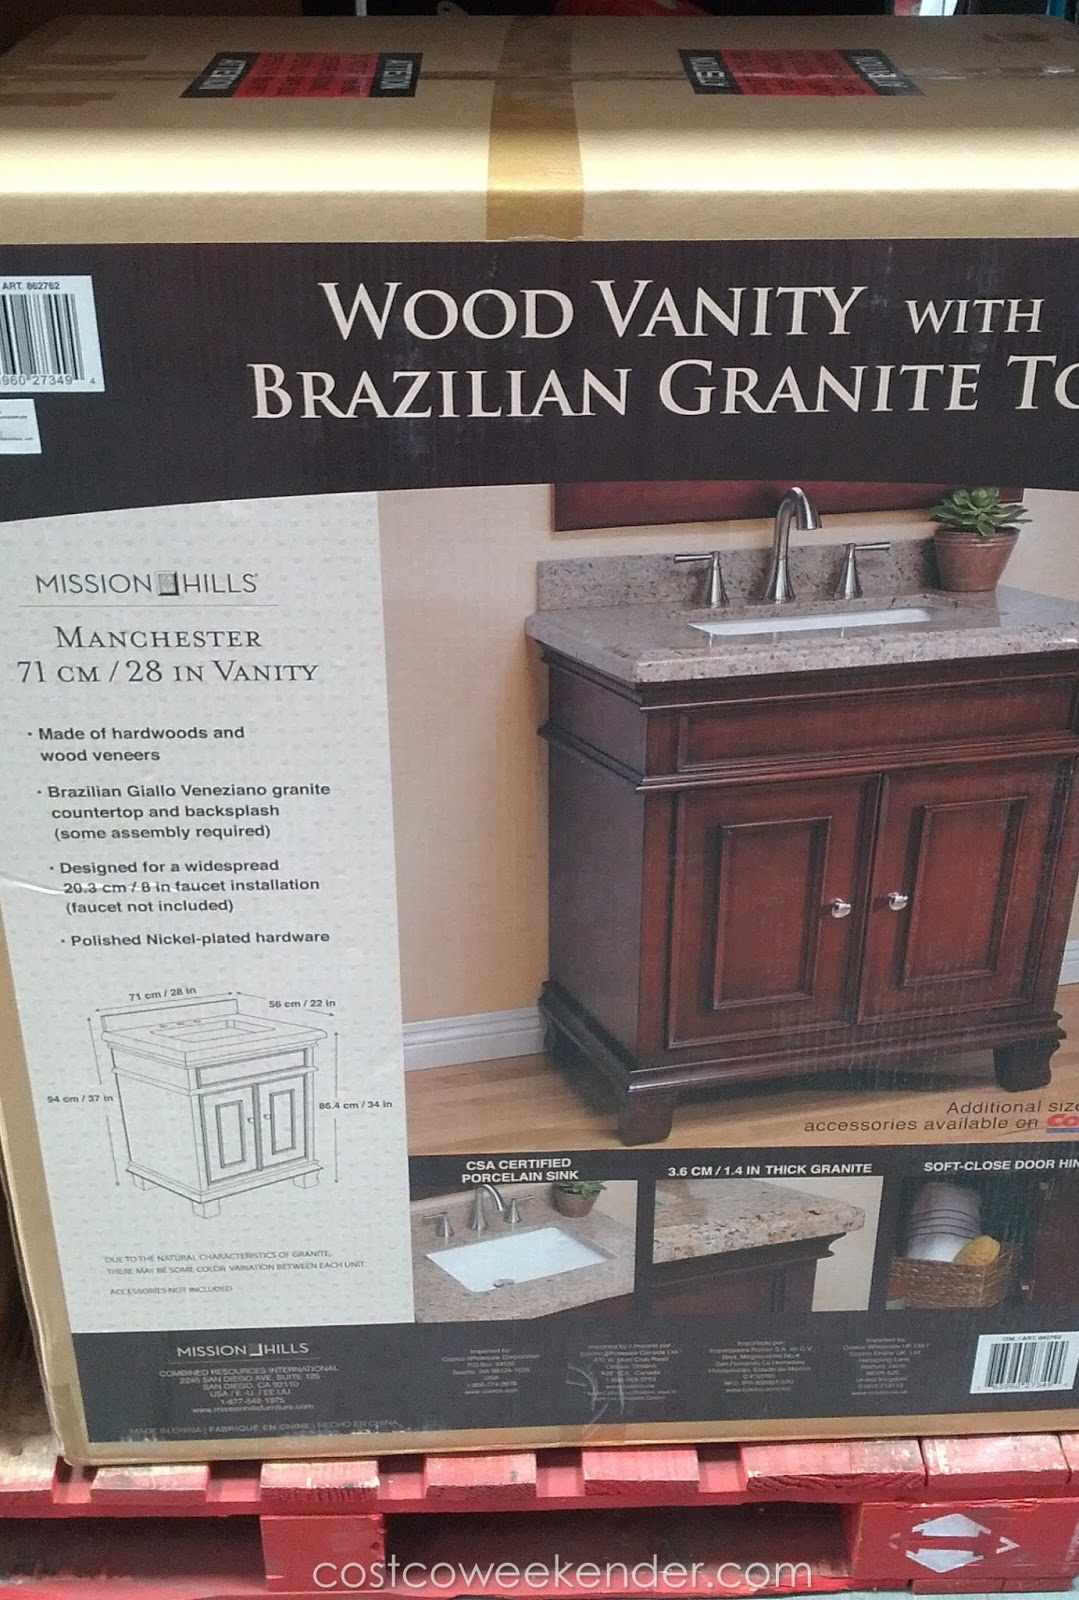 ... Manchester Wood Vanity with Brazilian Granite Top Costco Weekender